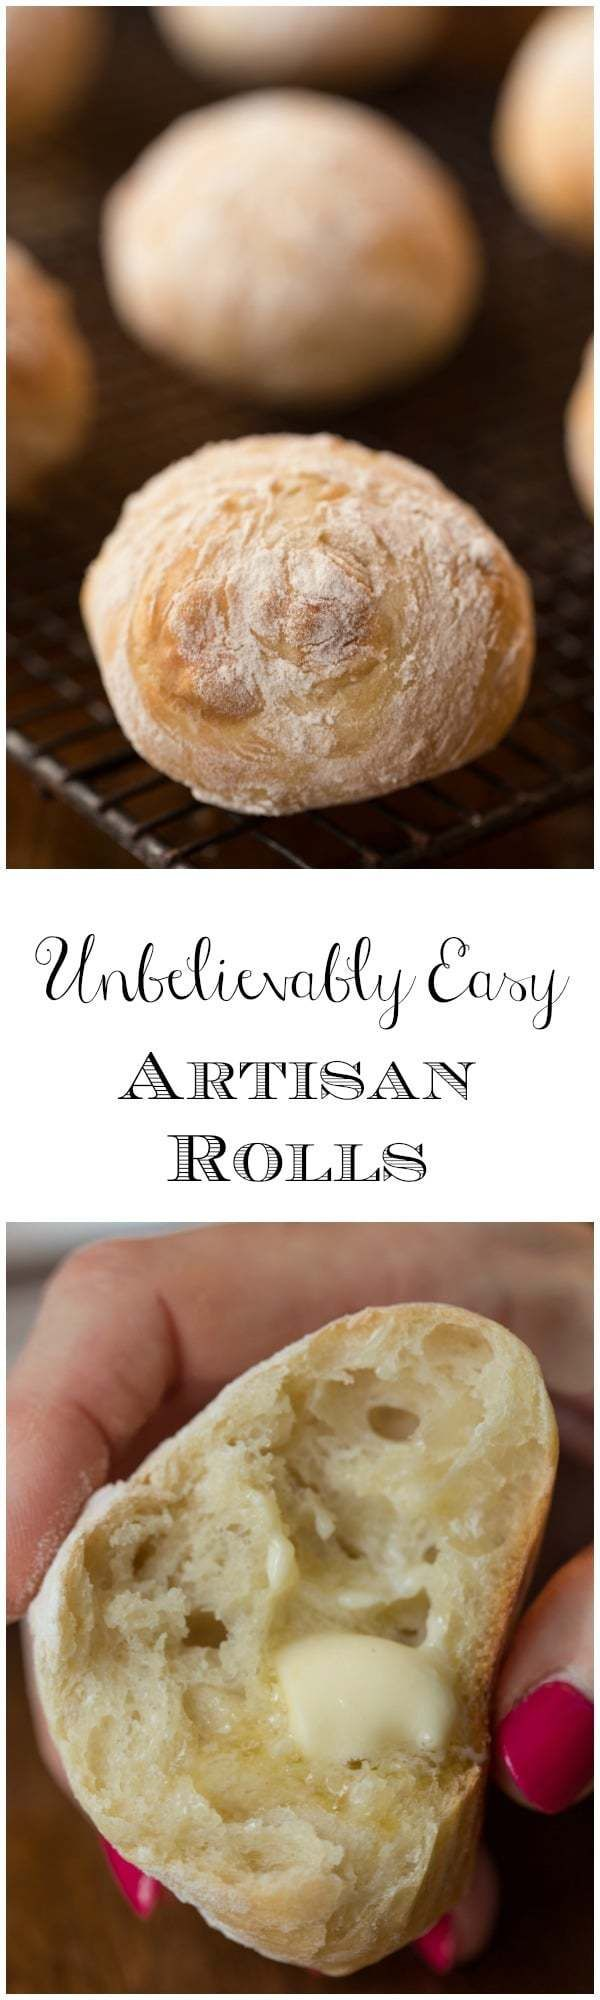 These Easy Artisan Rolls truly are unbelievably easy. Stir up the dough then go to bed. In the morning, shape and bake. Unbelievably delicious too!   via @cafesucrefarine